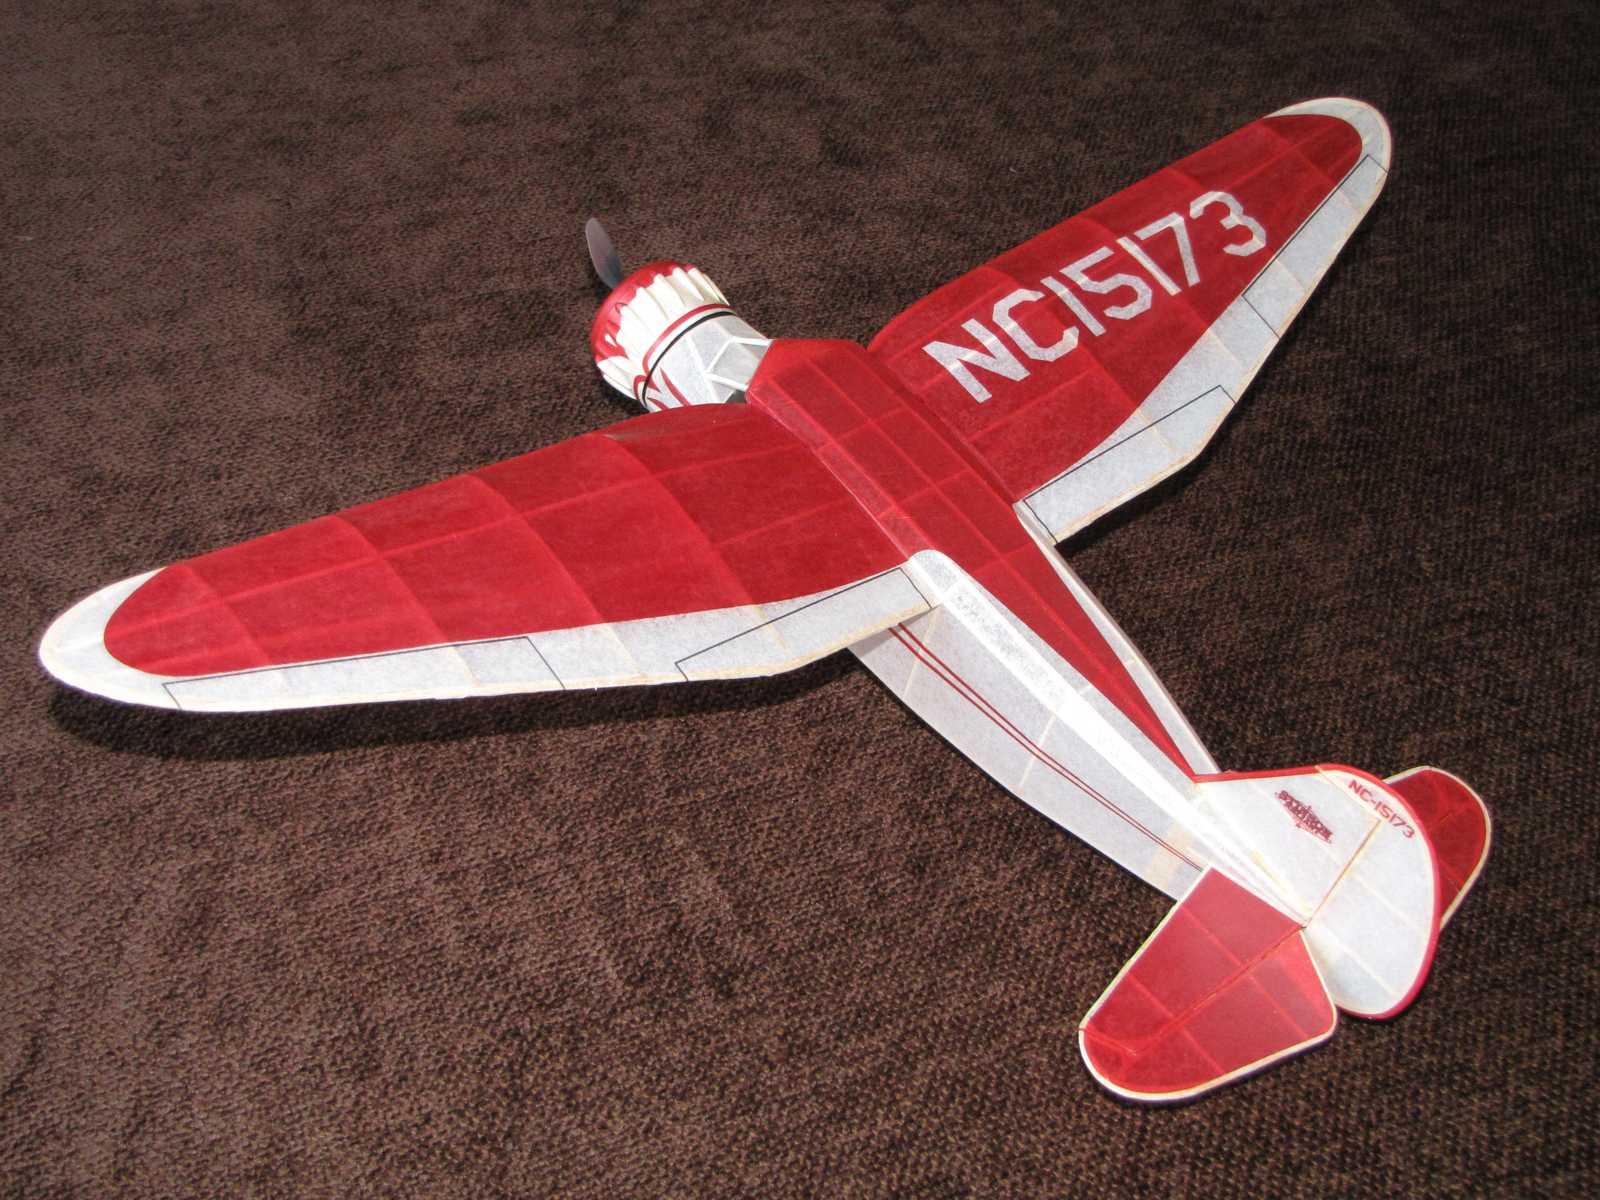 https://0201.nccdn.net/4_2/000/000/038/2d3/Stinson-RC-left-rear.jpg